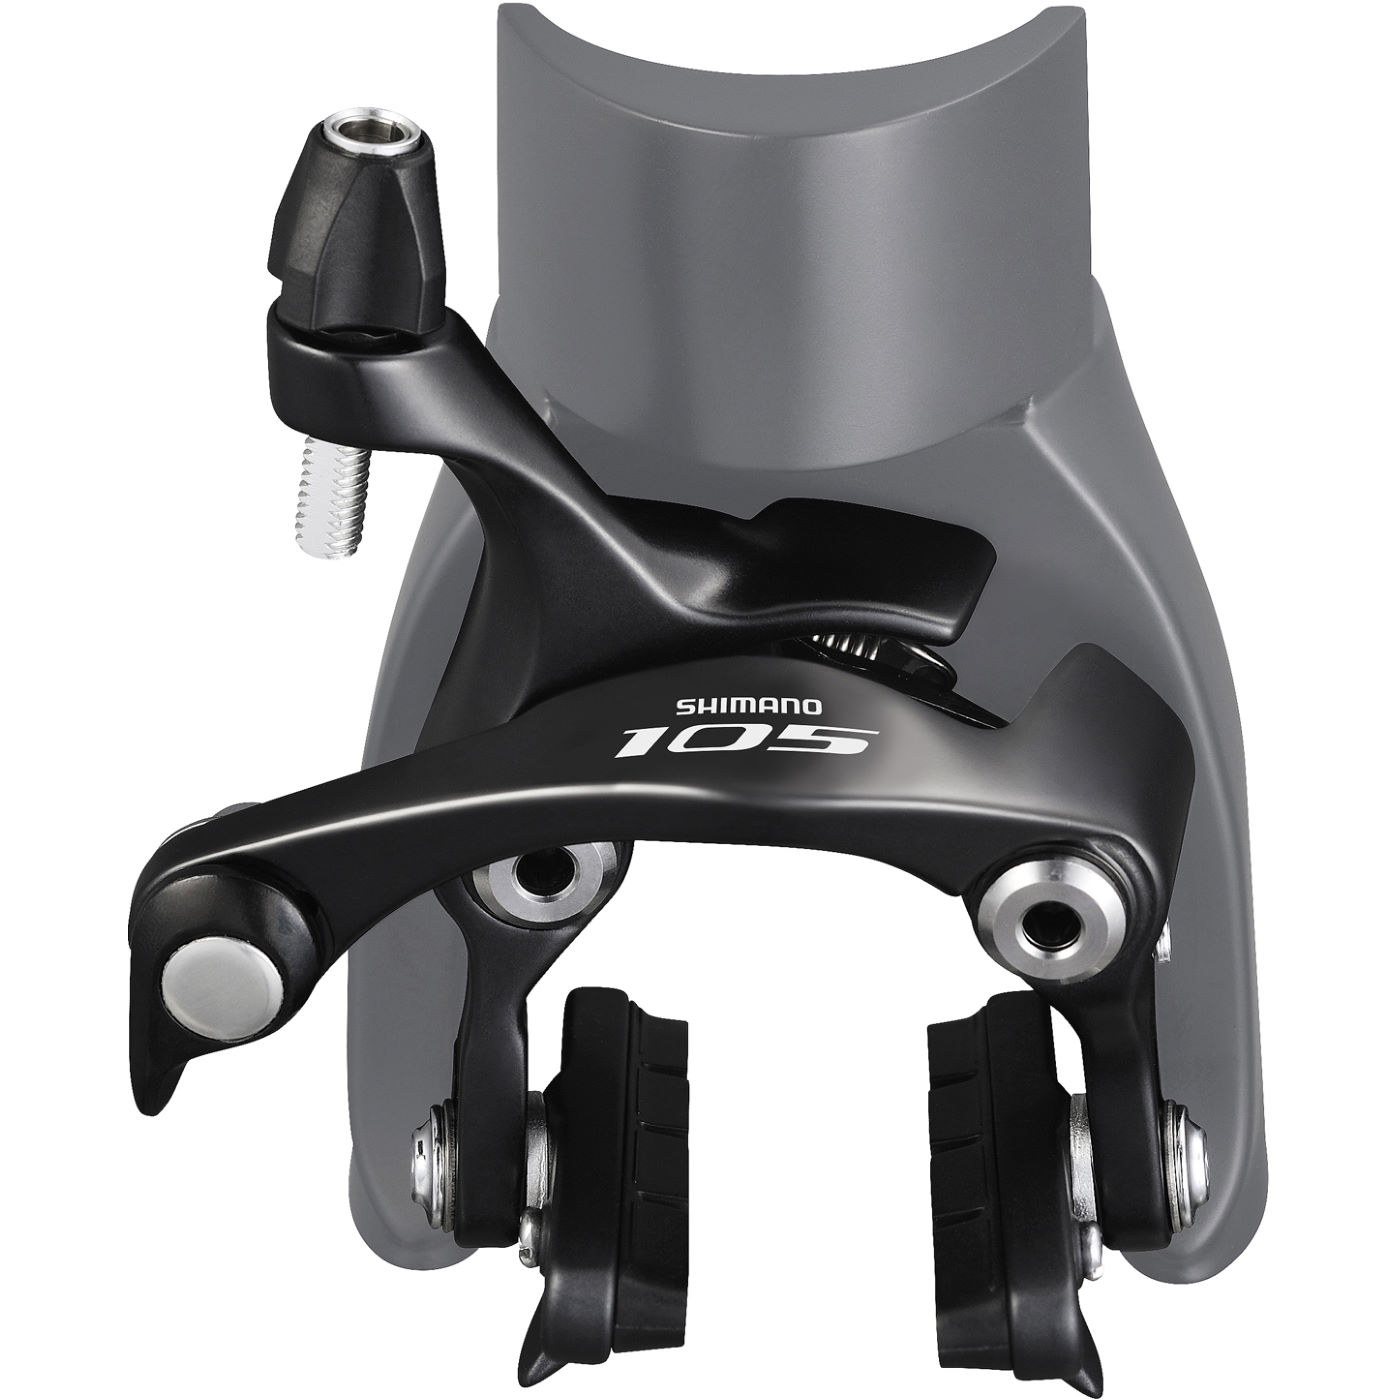 triers v brake shimano 105 5800 direct mount brake caliper wiggle france. Black Bedroom Furniture Sets. Home Design Ideas